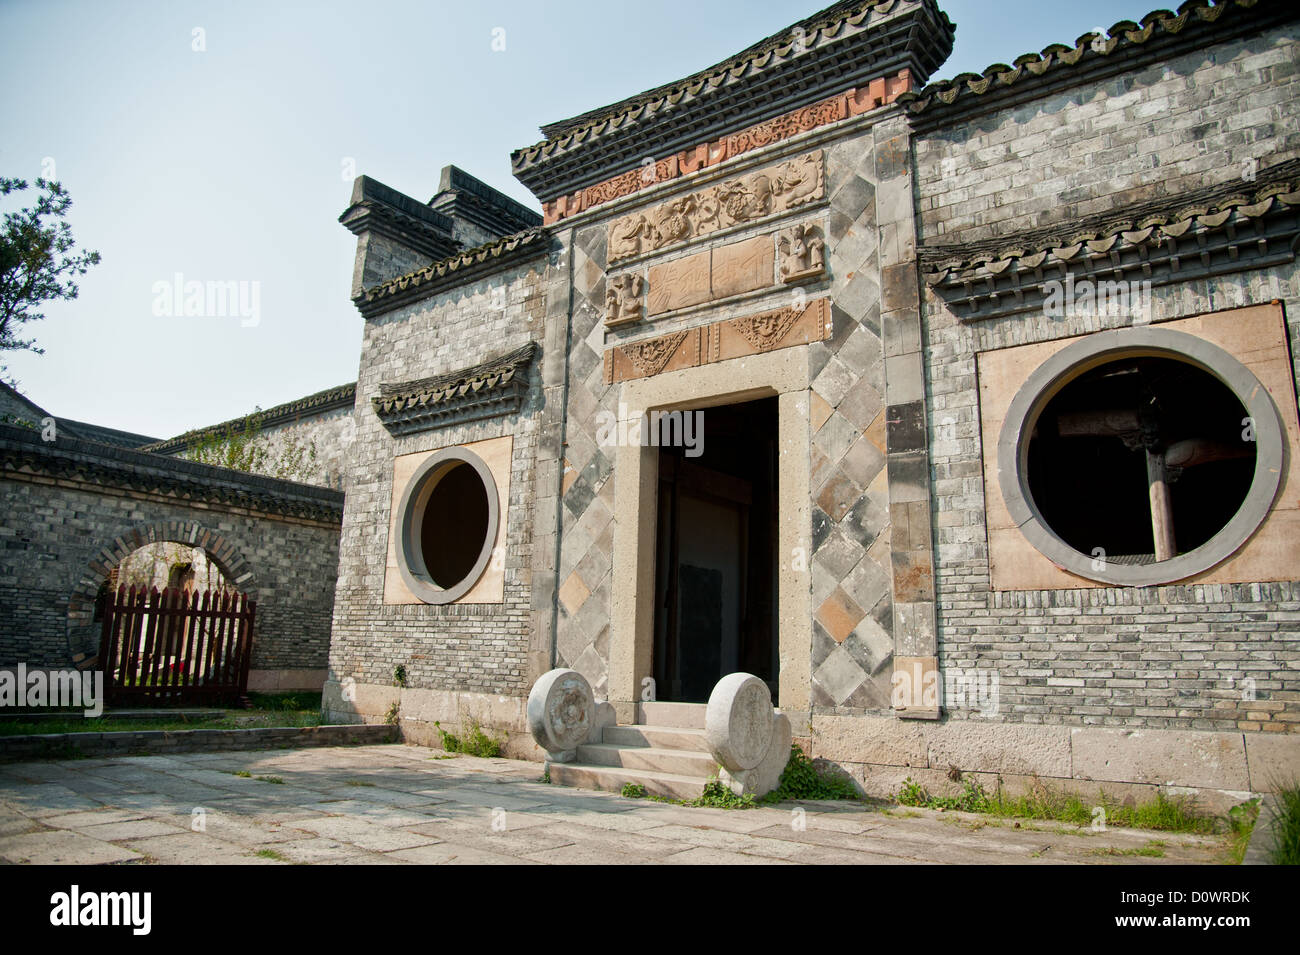 [GAMEPLAY] Book of Kings - Página 13 An-old-traditional-chinese-brick-house-with-carved-beams-and-eaves-D0WRDK